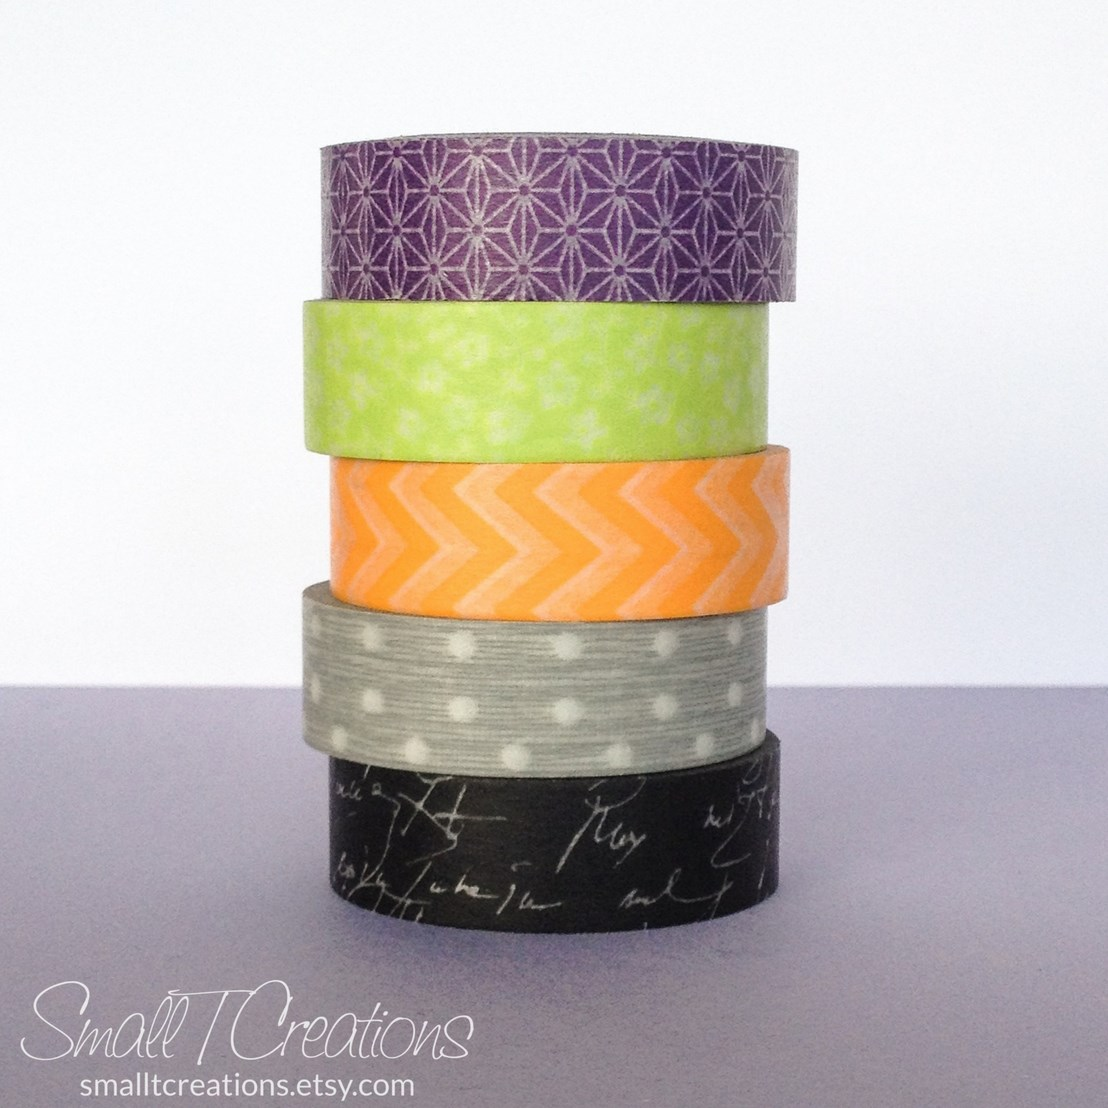 Halloween Washi Tape Set by Small T Creations on Etsy https://www.etsy.com/listing/207502328/halloween-washi-tape-set-masking-tape?ref=shop_home_active_4